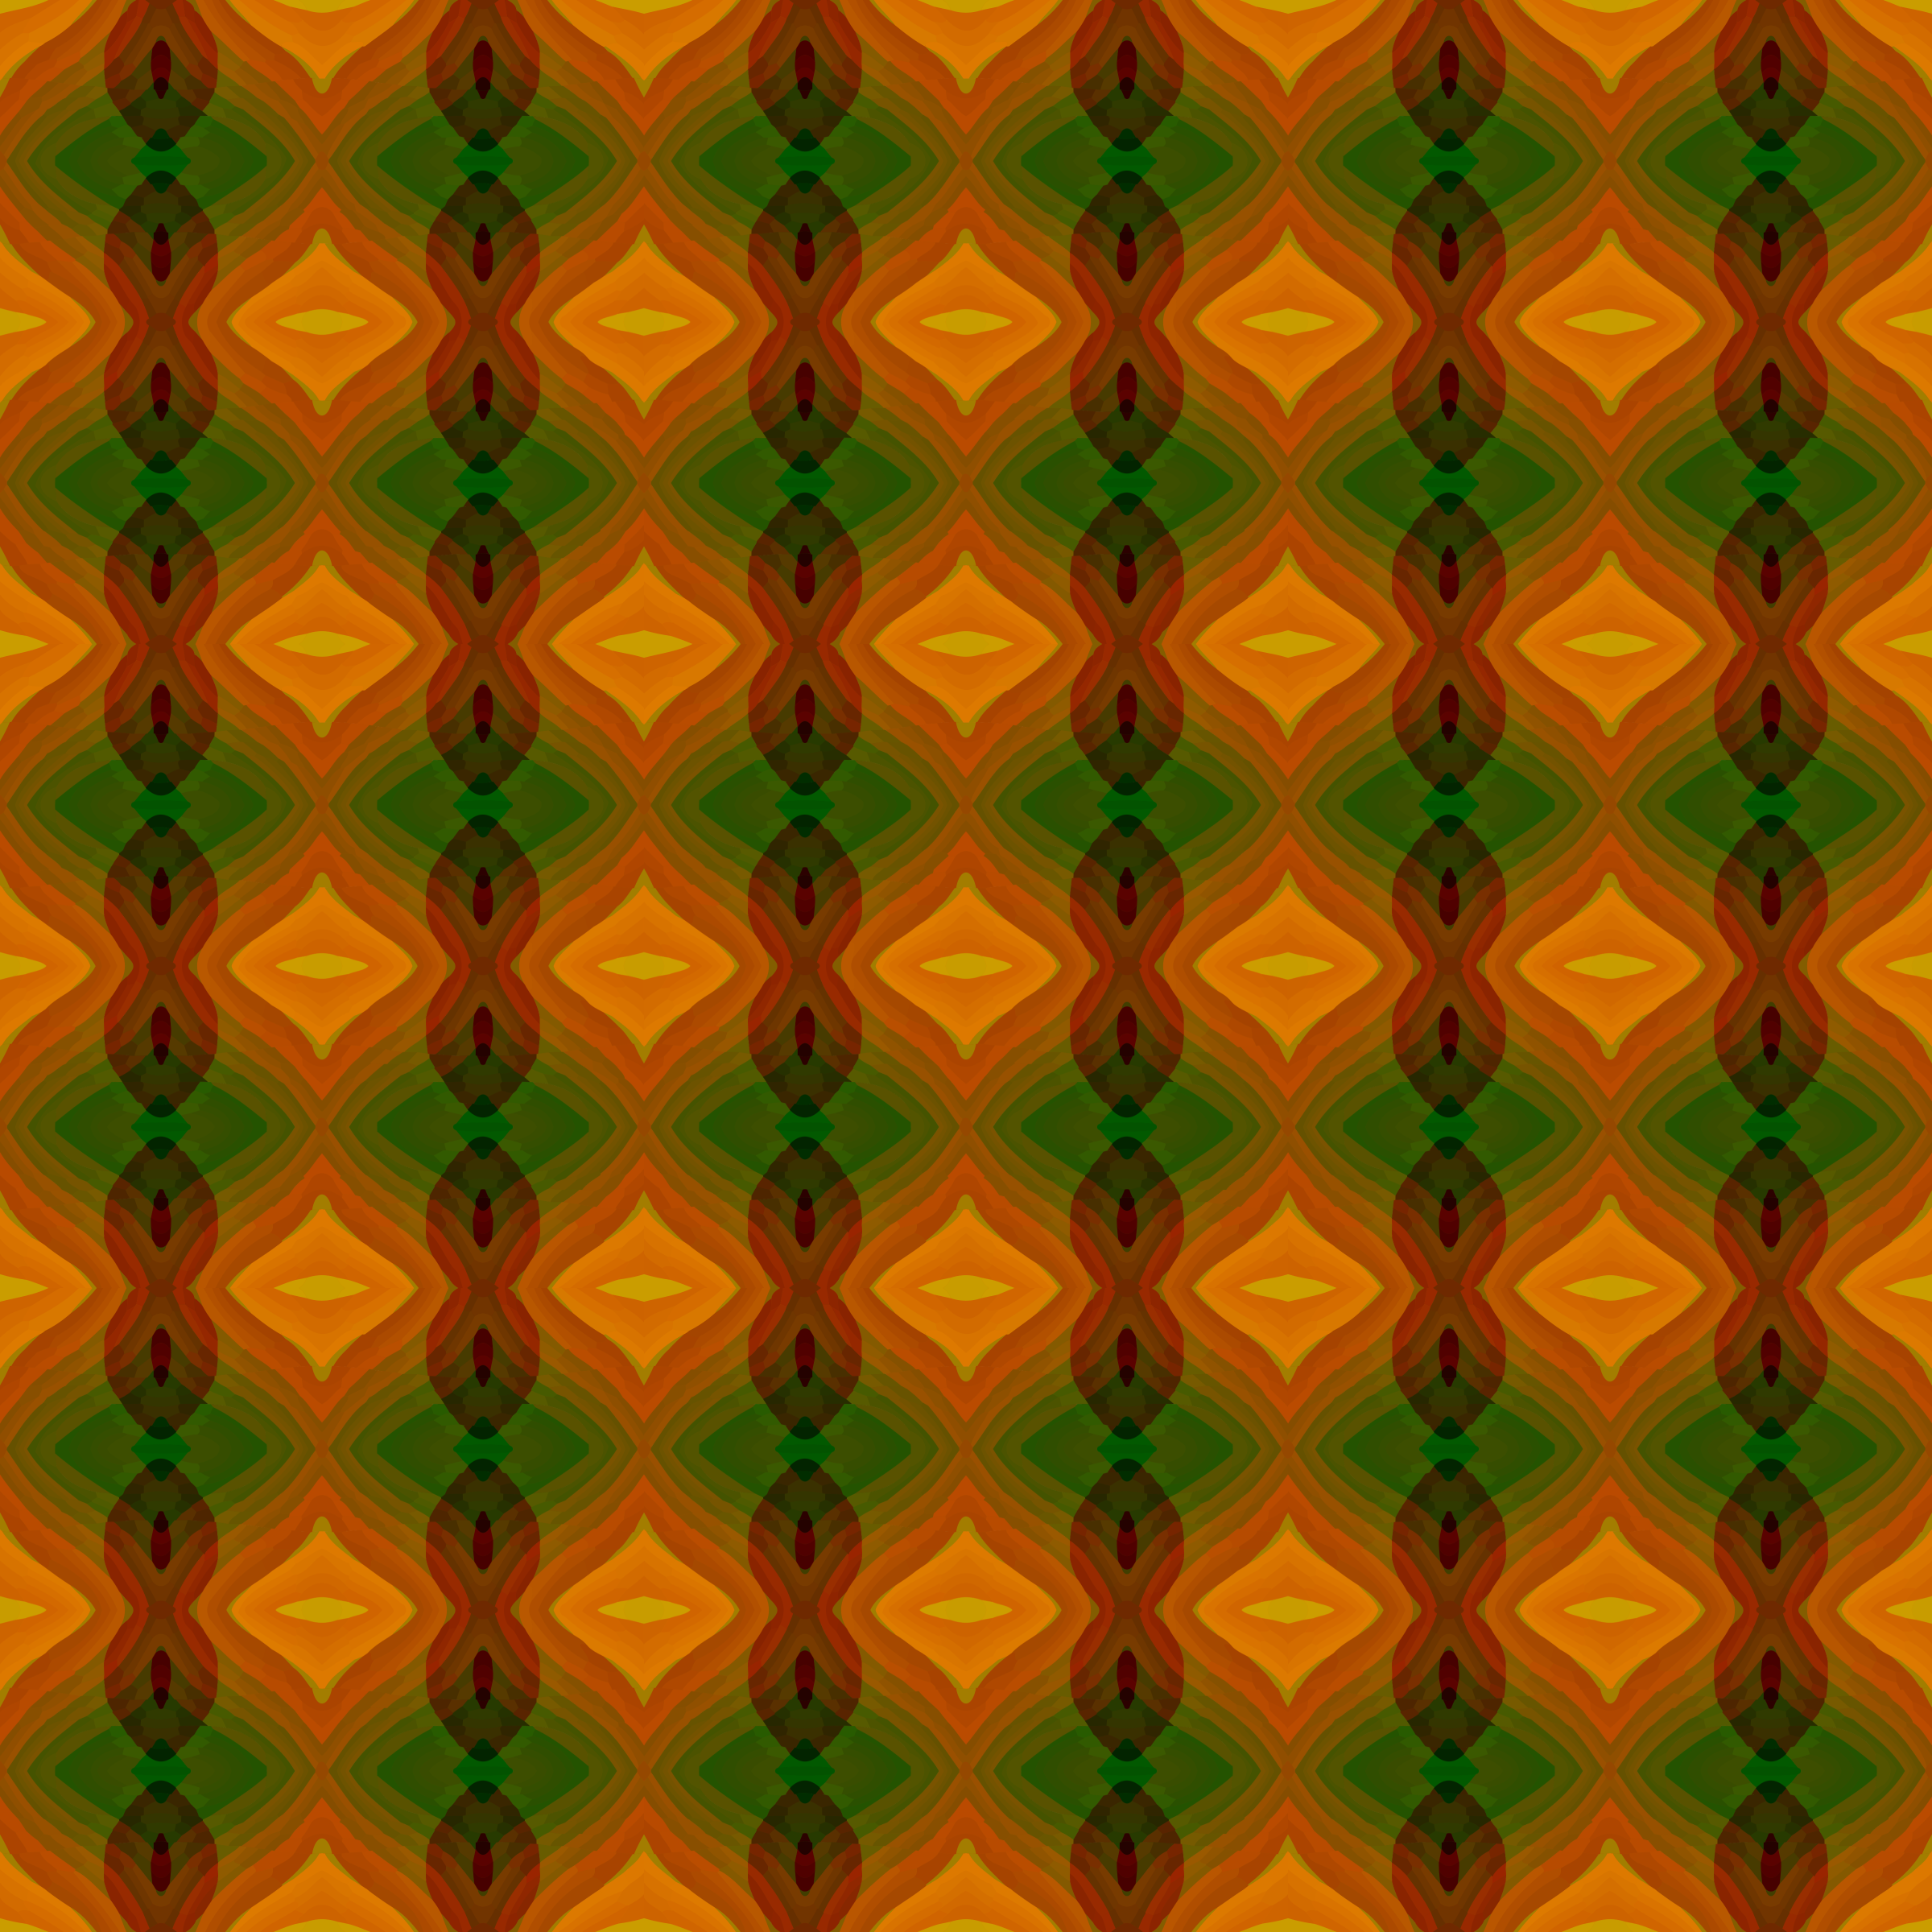 Background pattern 225 (colour 6) by Firkin